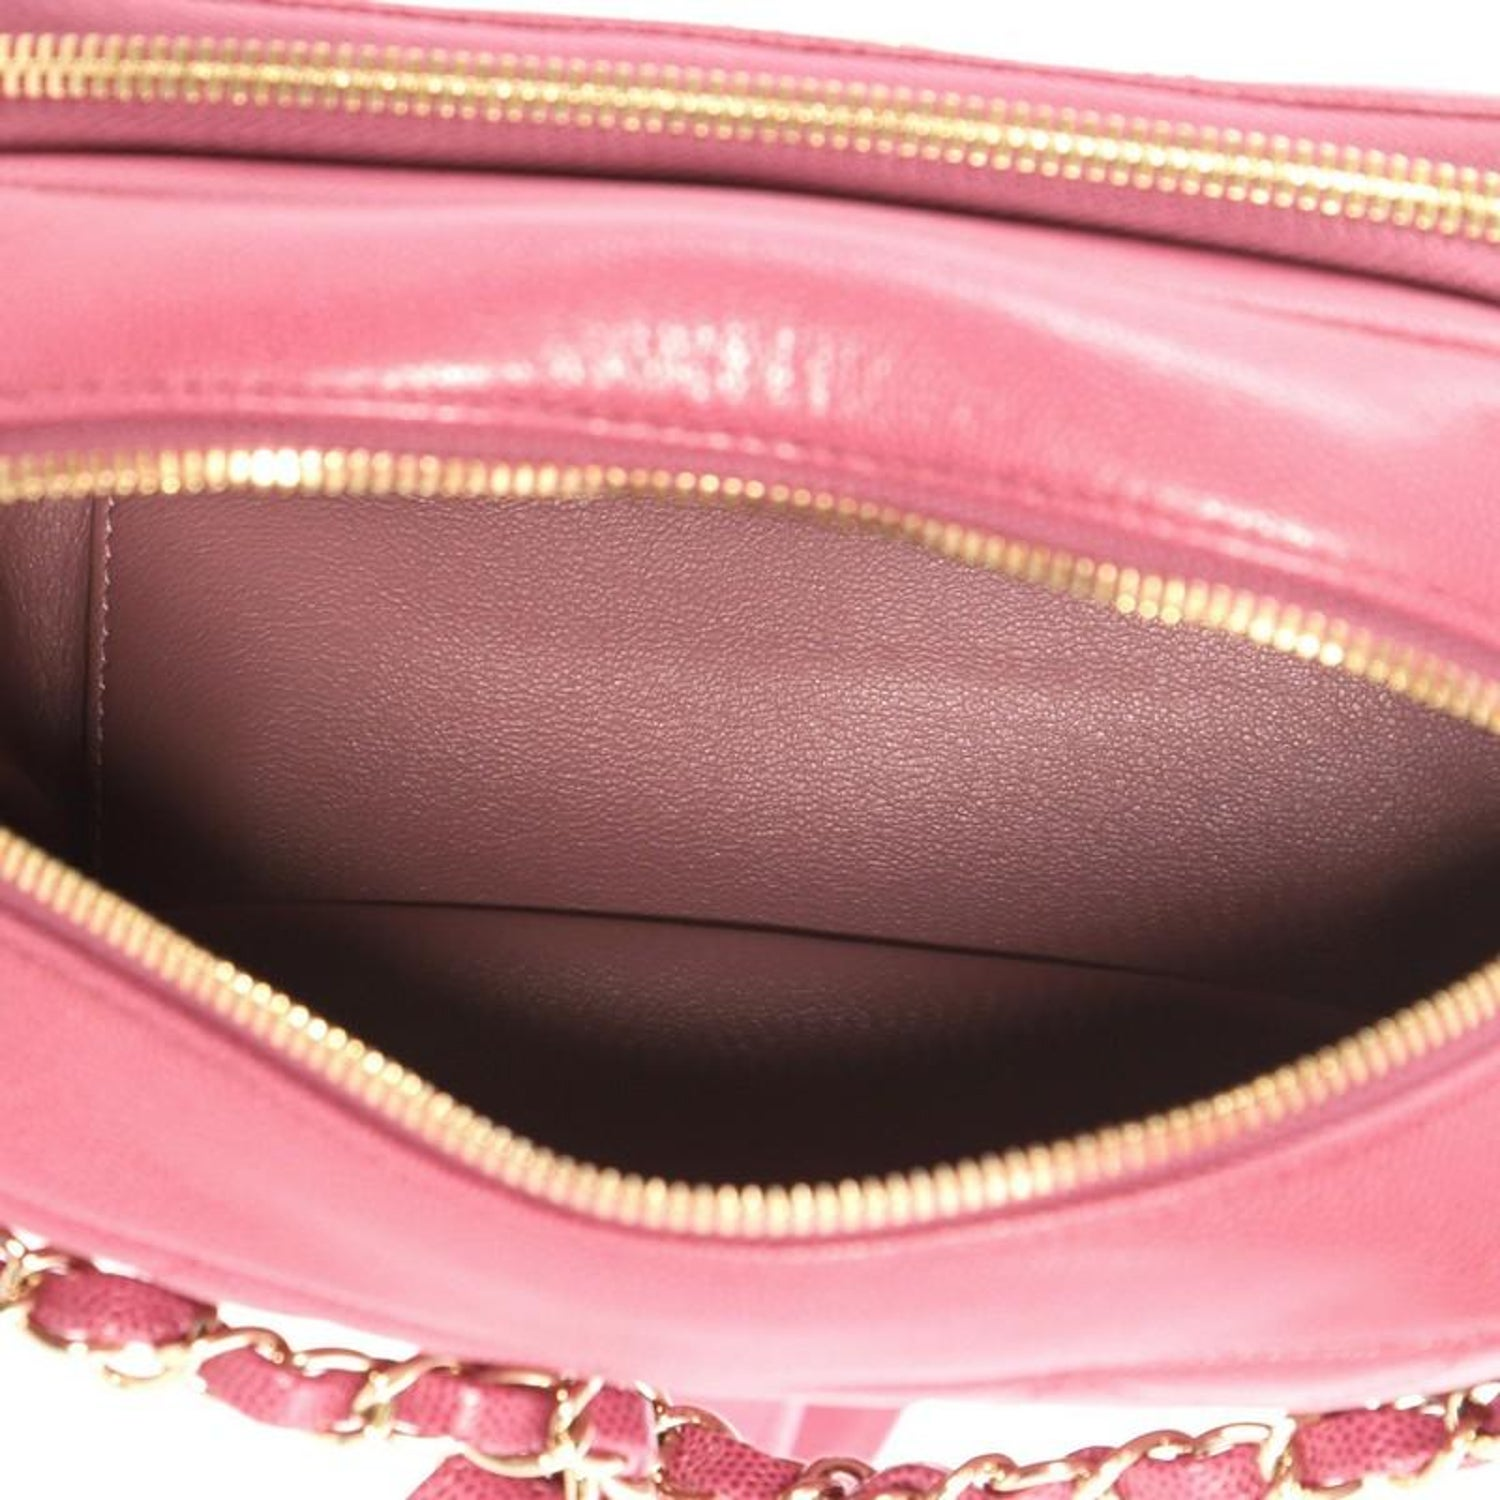 d995dccf2162 Chanel Business Affinity Camera Case Bag Quilted Caviar Small at 1stdibs